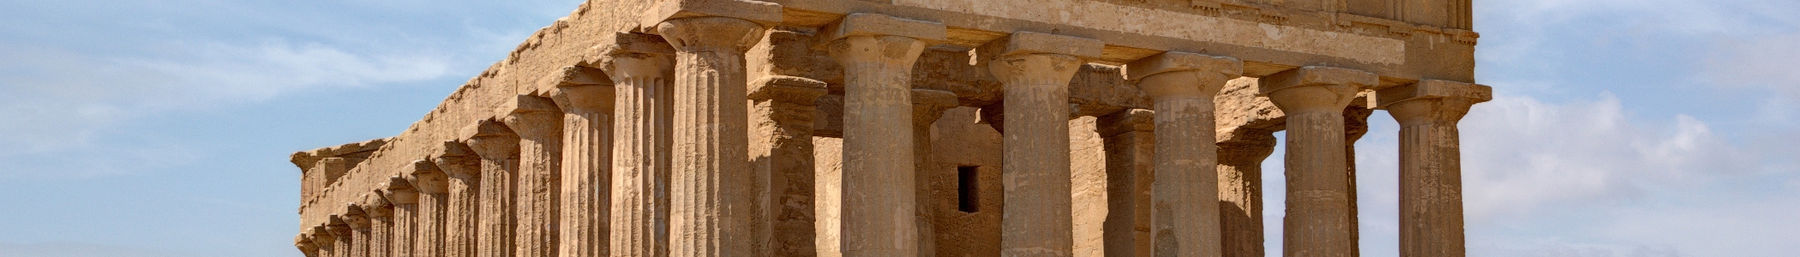 Agrigento banner Temple of Concordia columns.jpg